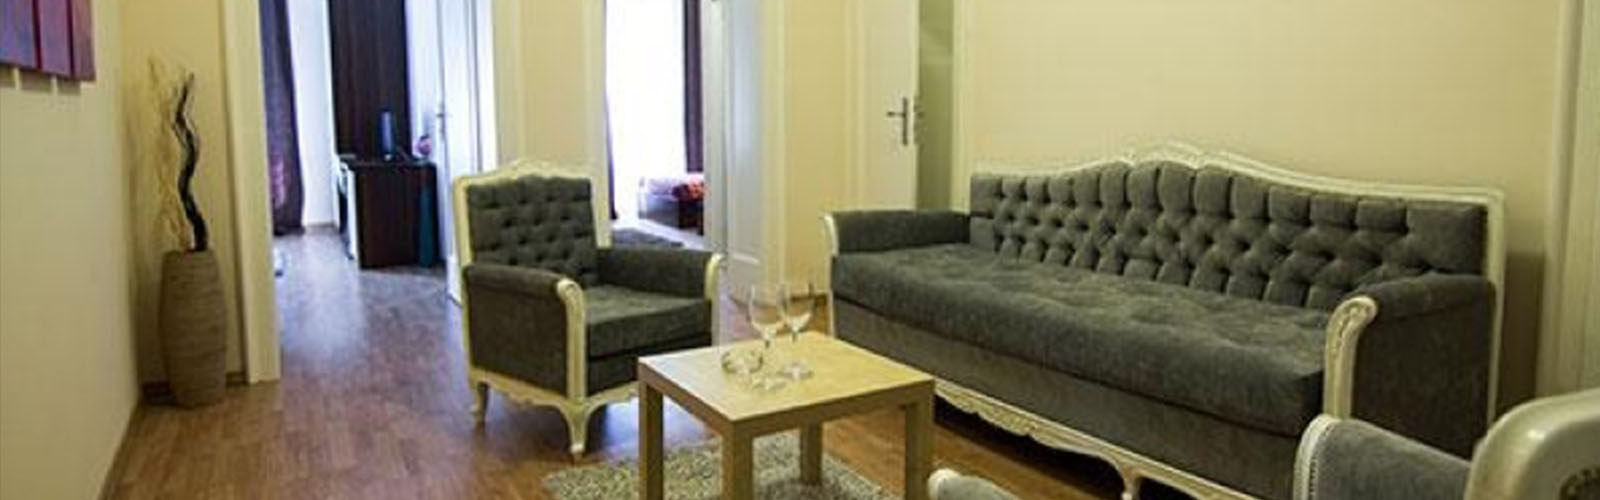 Concierge Belgrade | Apartman Delta Top 109